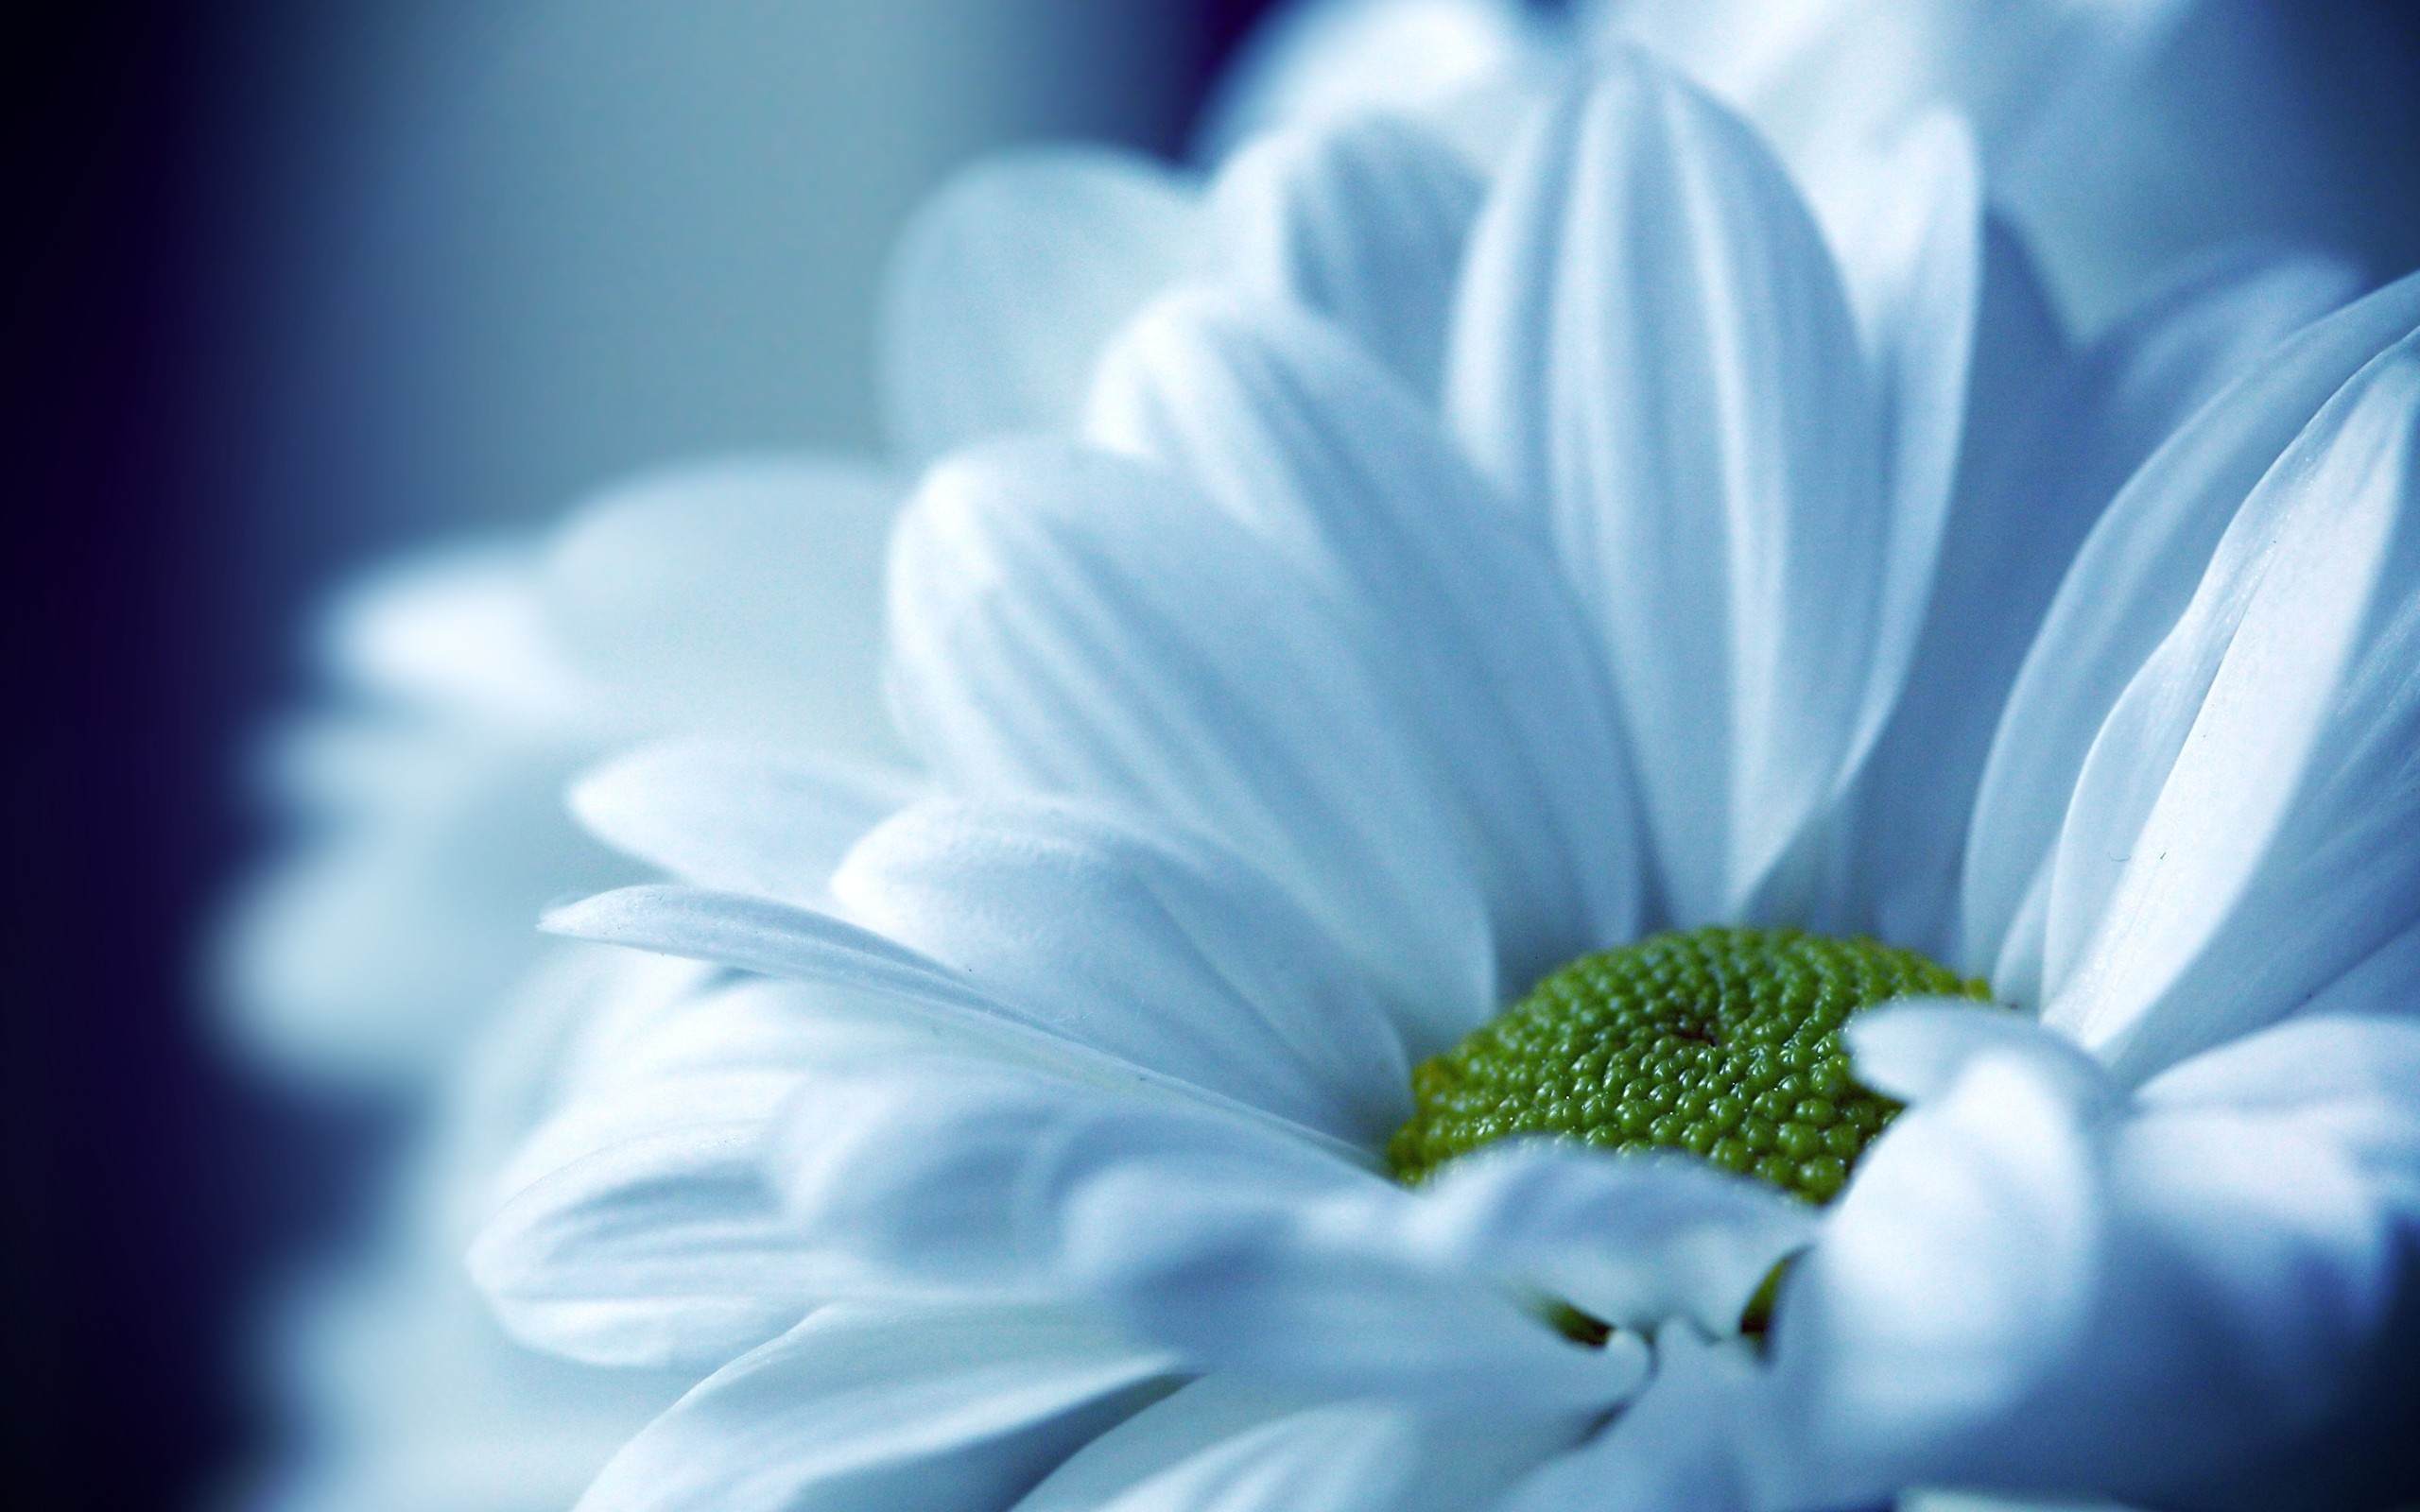 Find out: Beautiful White Flower Petals wallpaper on https://hdpicorner.com